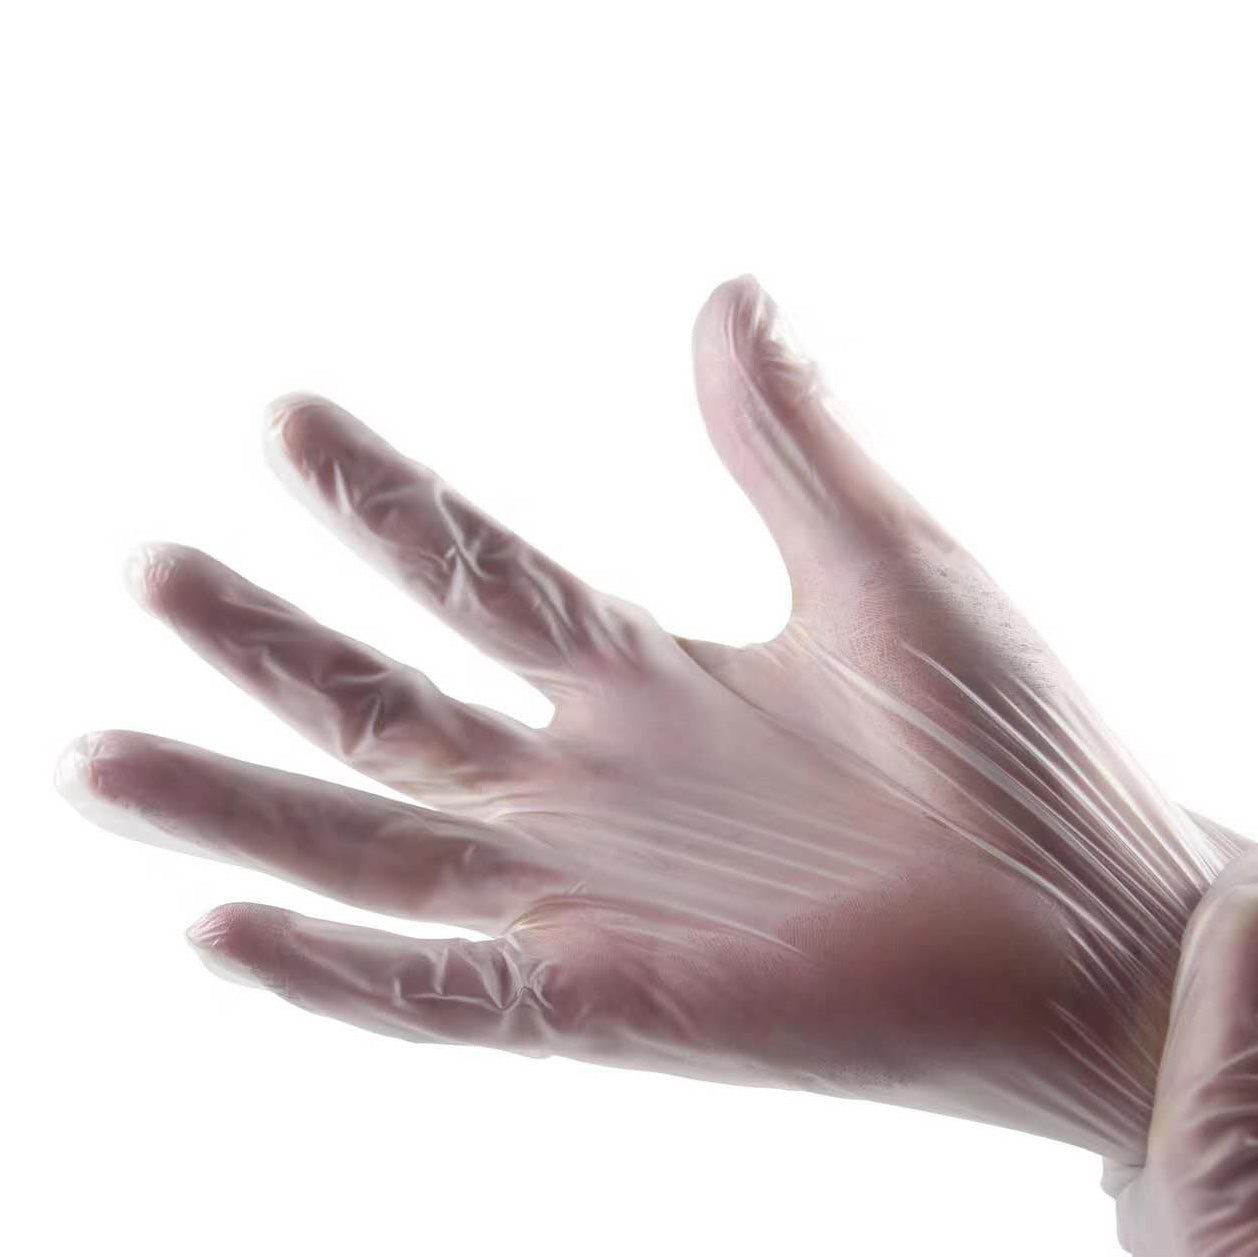 Latex-Free Gloves (Set of 50 Pairs)